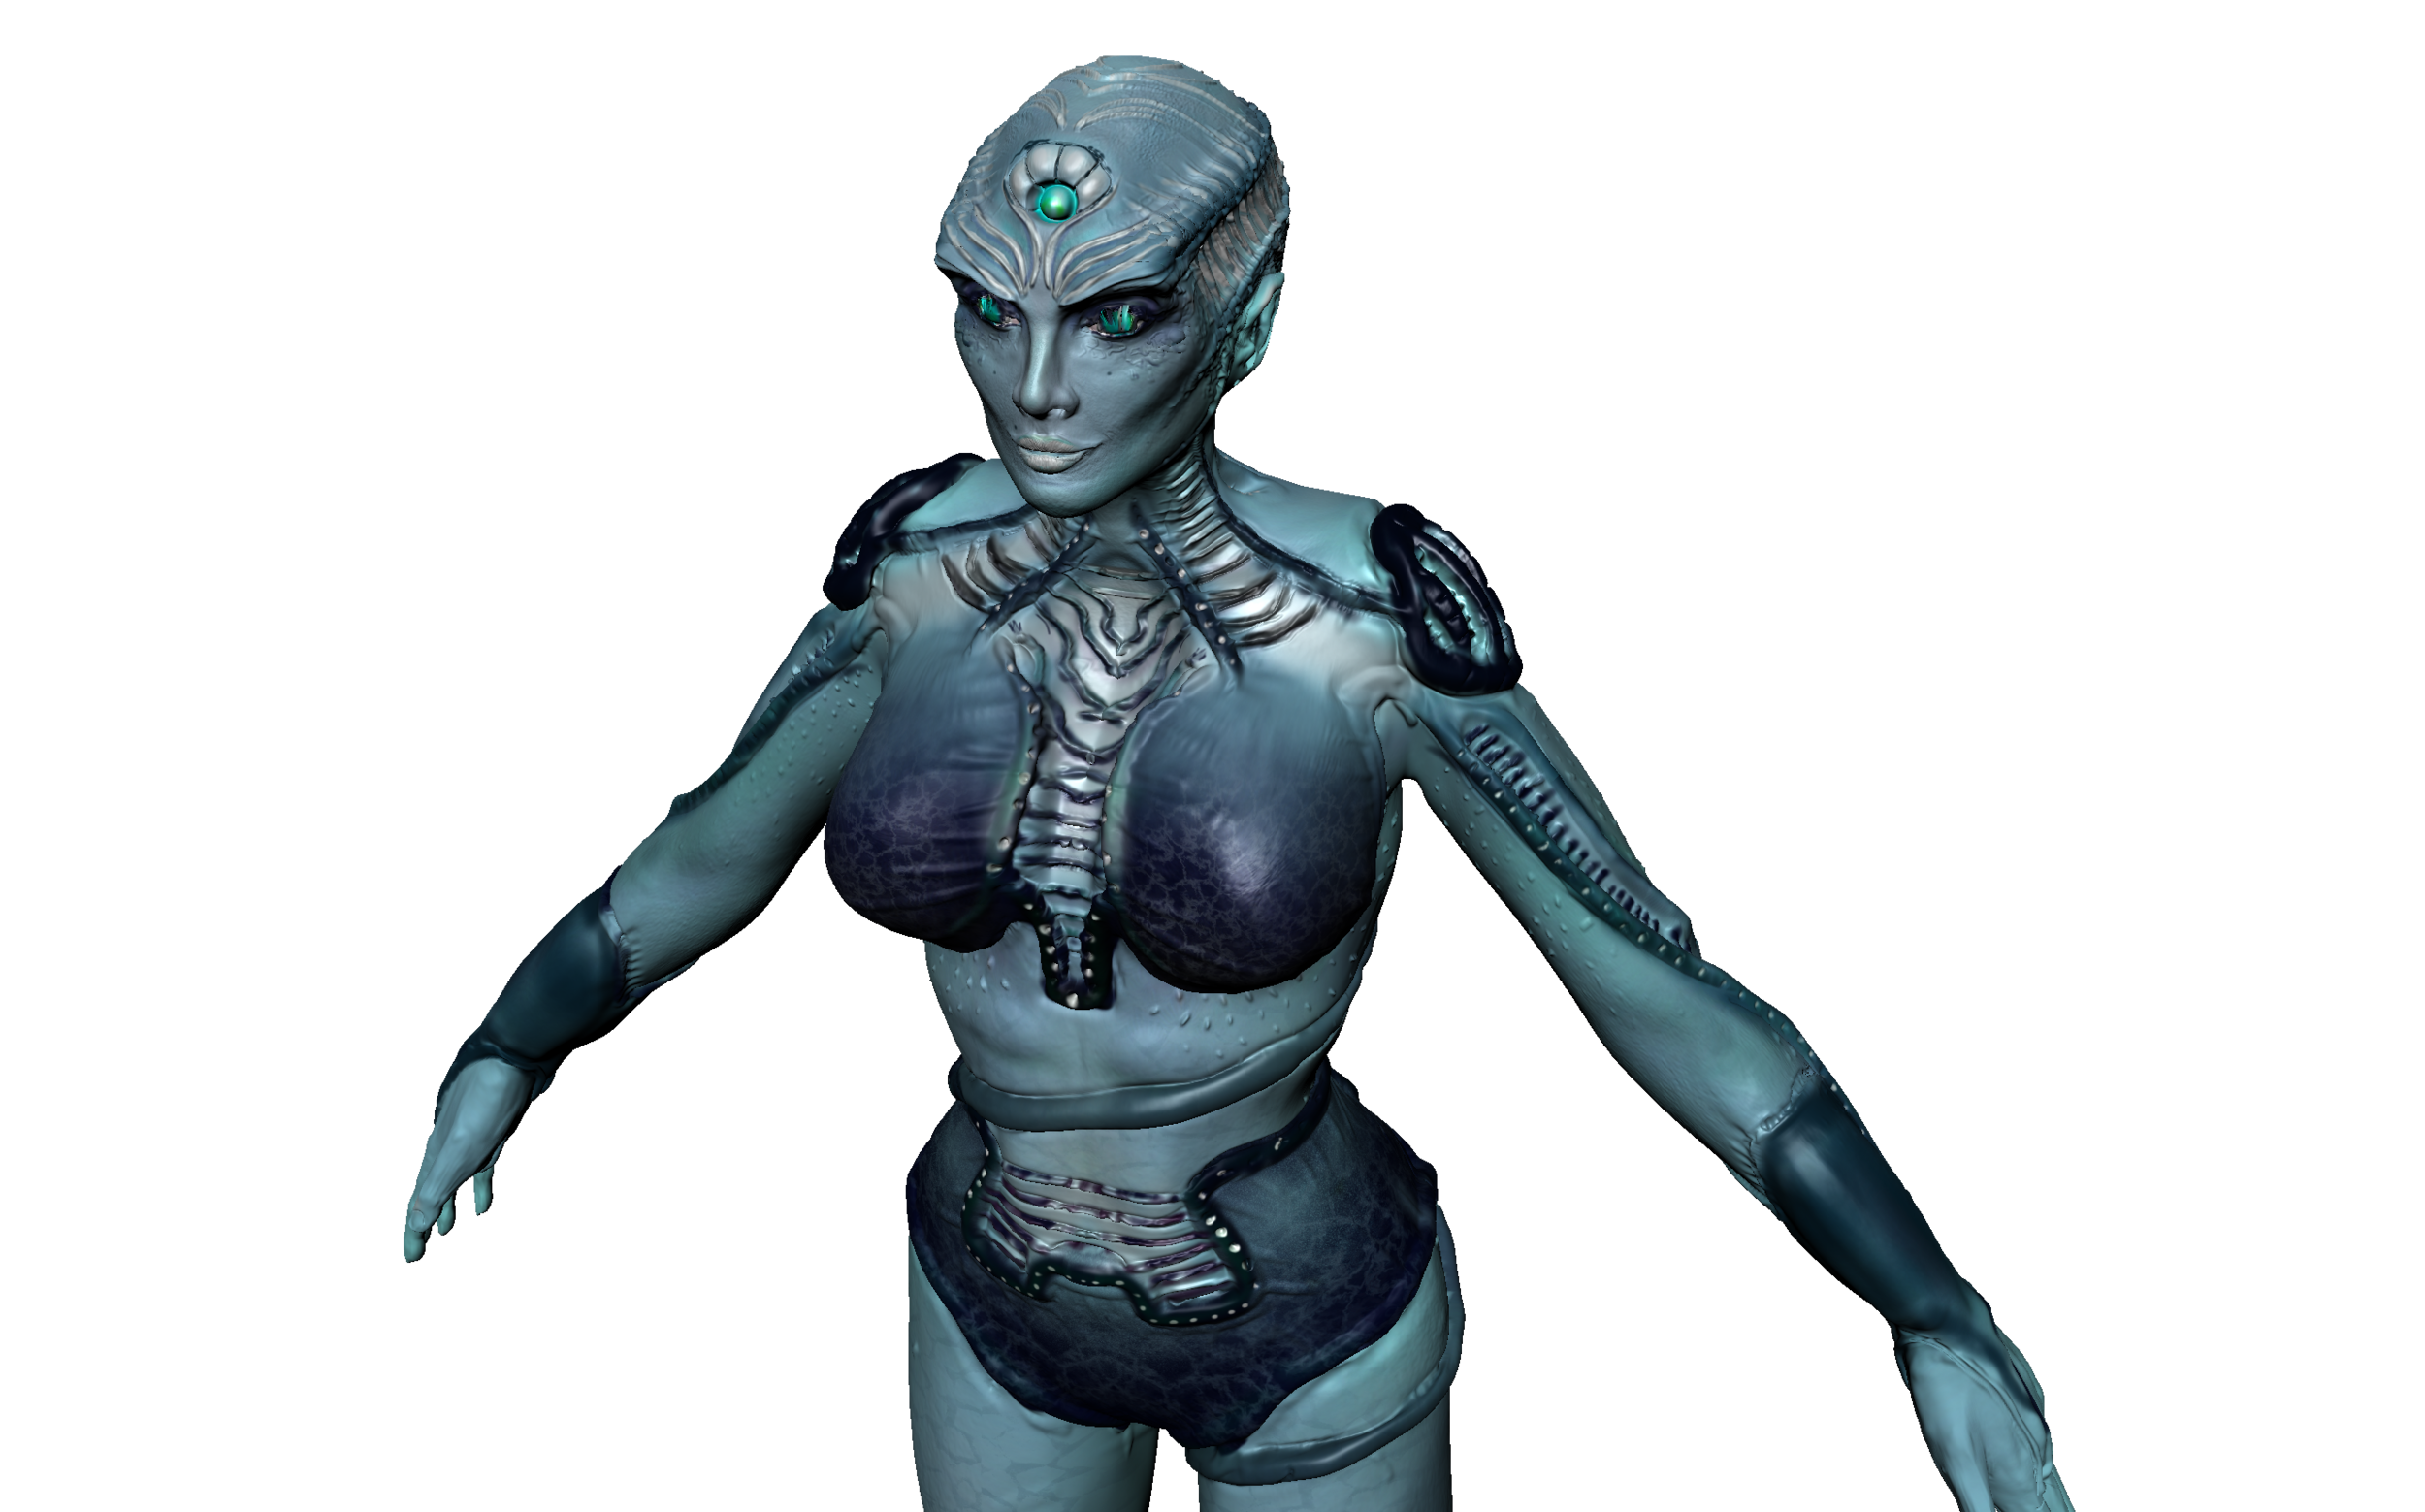 My character design using Maya and Mudbox allowed me to explored a combination of anatomical parts, creating the model's figure from scratch, as well as explore organic shapes and tools on top of the surface.